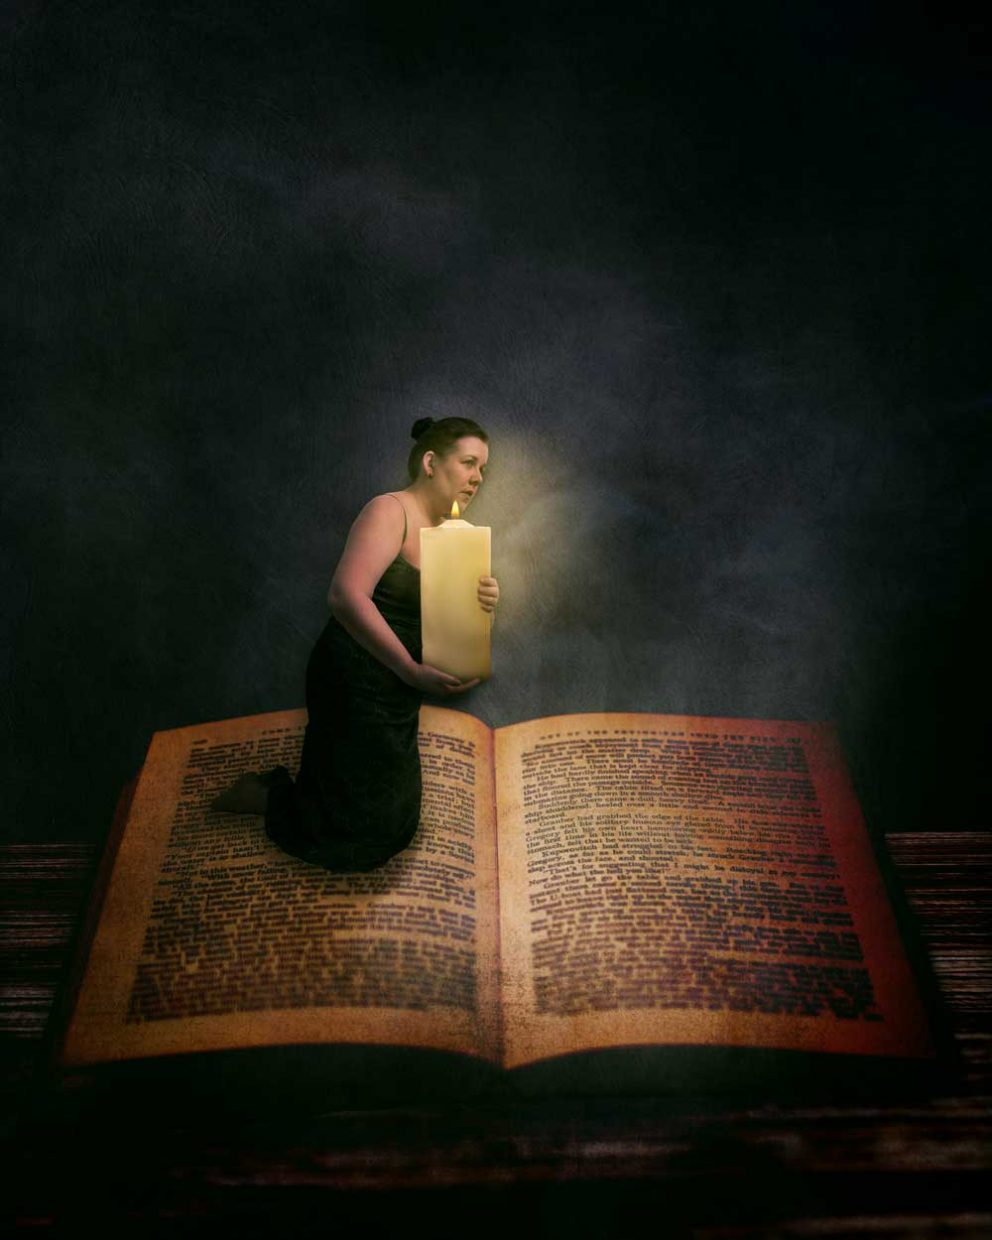 Reading by Candlelight - a new fine art photograph from Sara Sadler